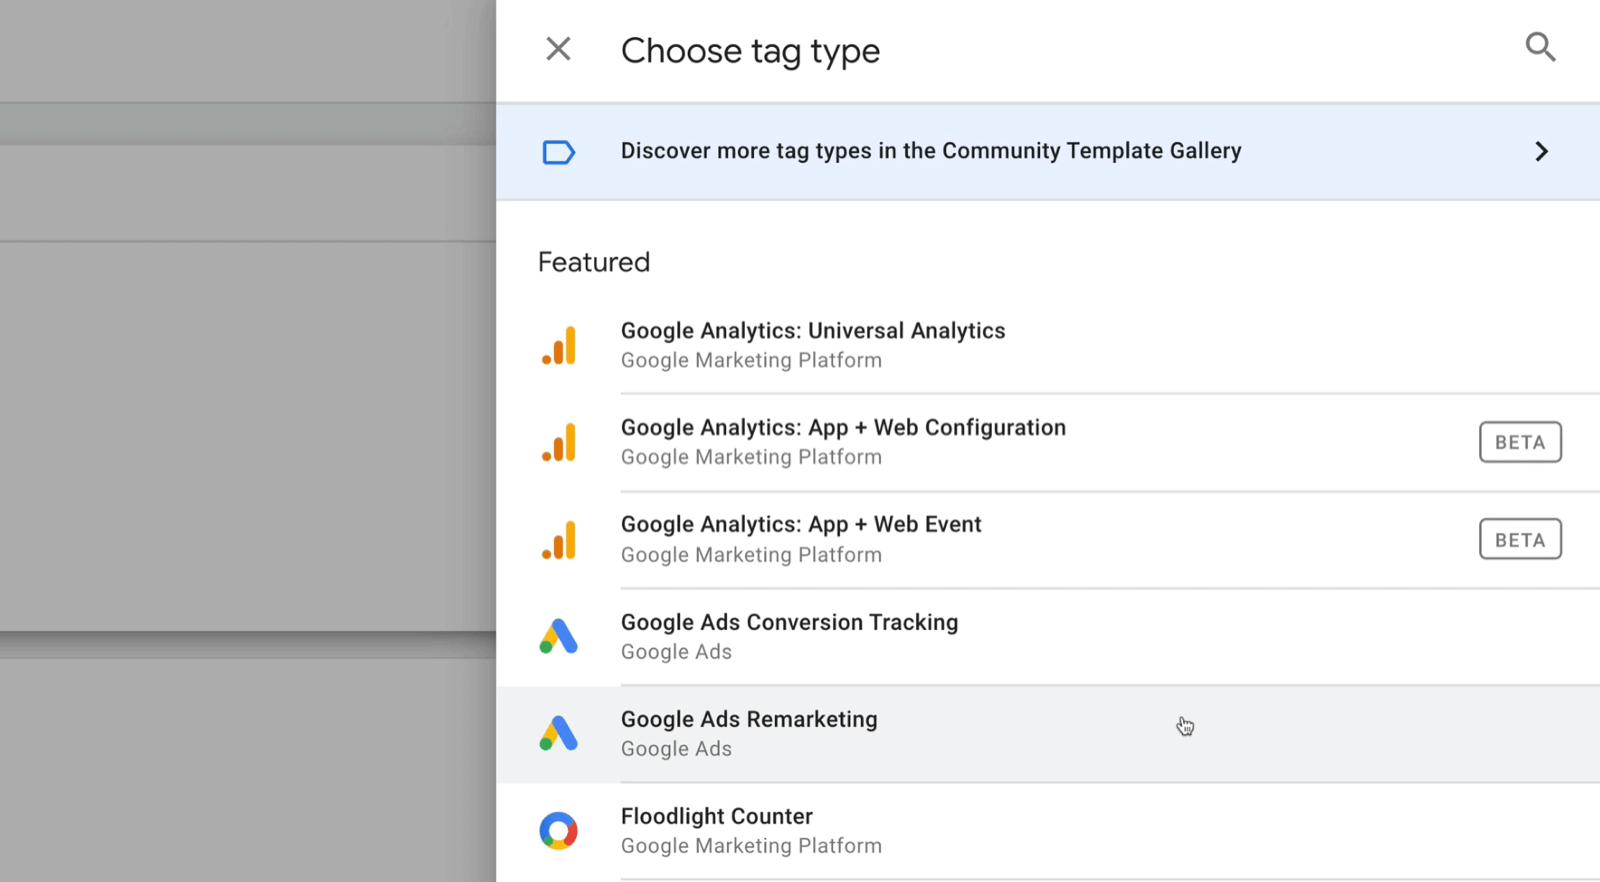 new google tag manager tag with choose tag type menu options with several featured, including google analytics: universal analytics, google analytics: app + web configuration, google ads remarketing, among others